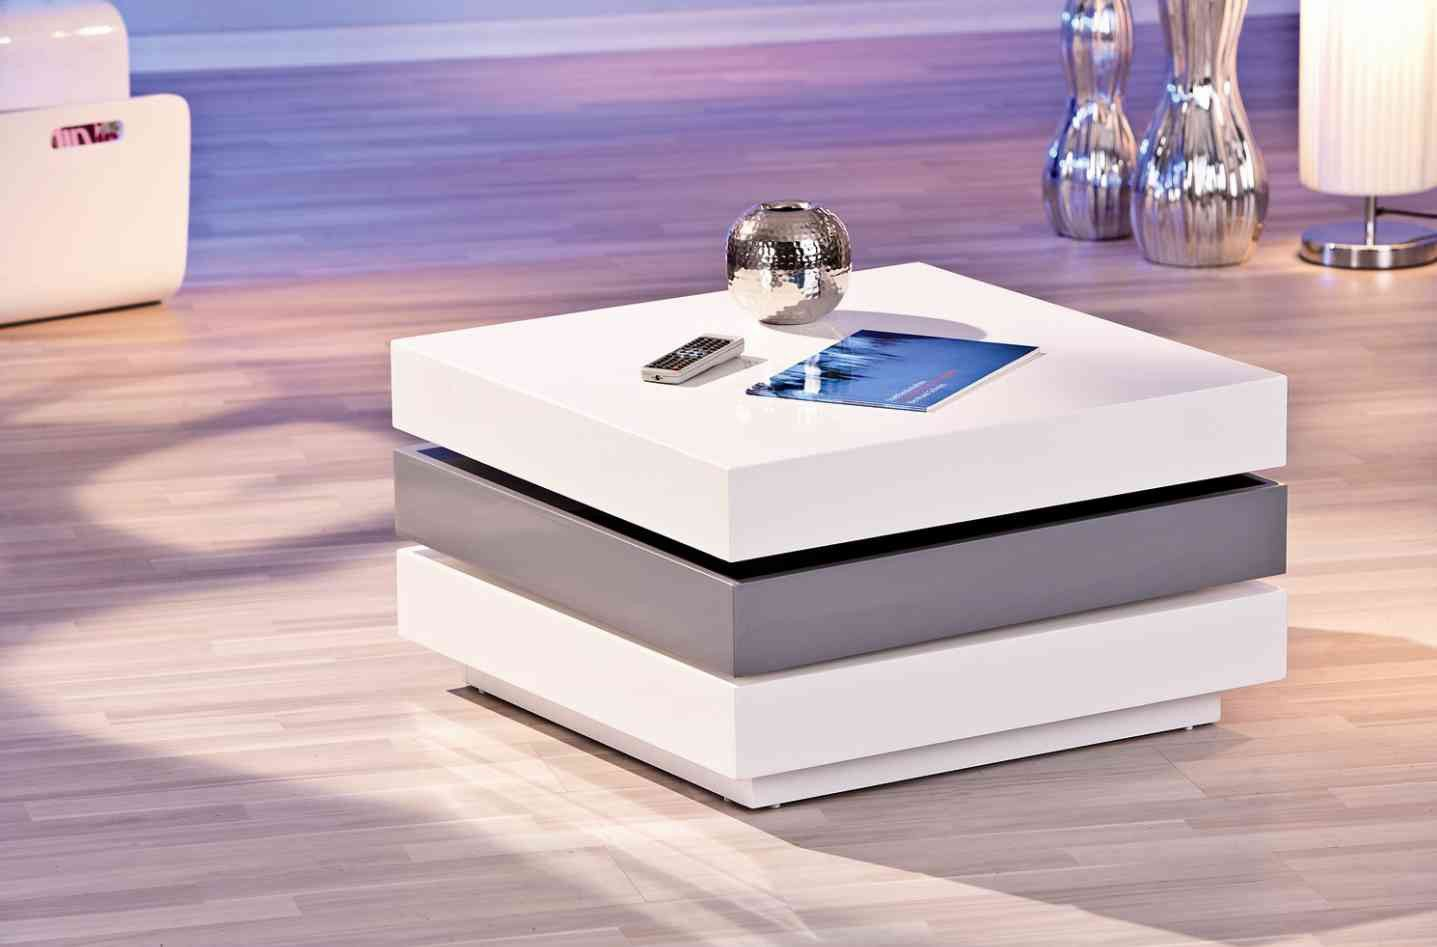 table basse modulable design laqu e blanche et grise star